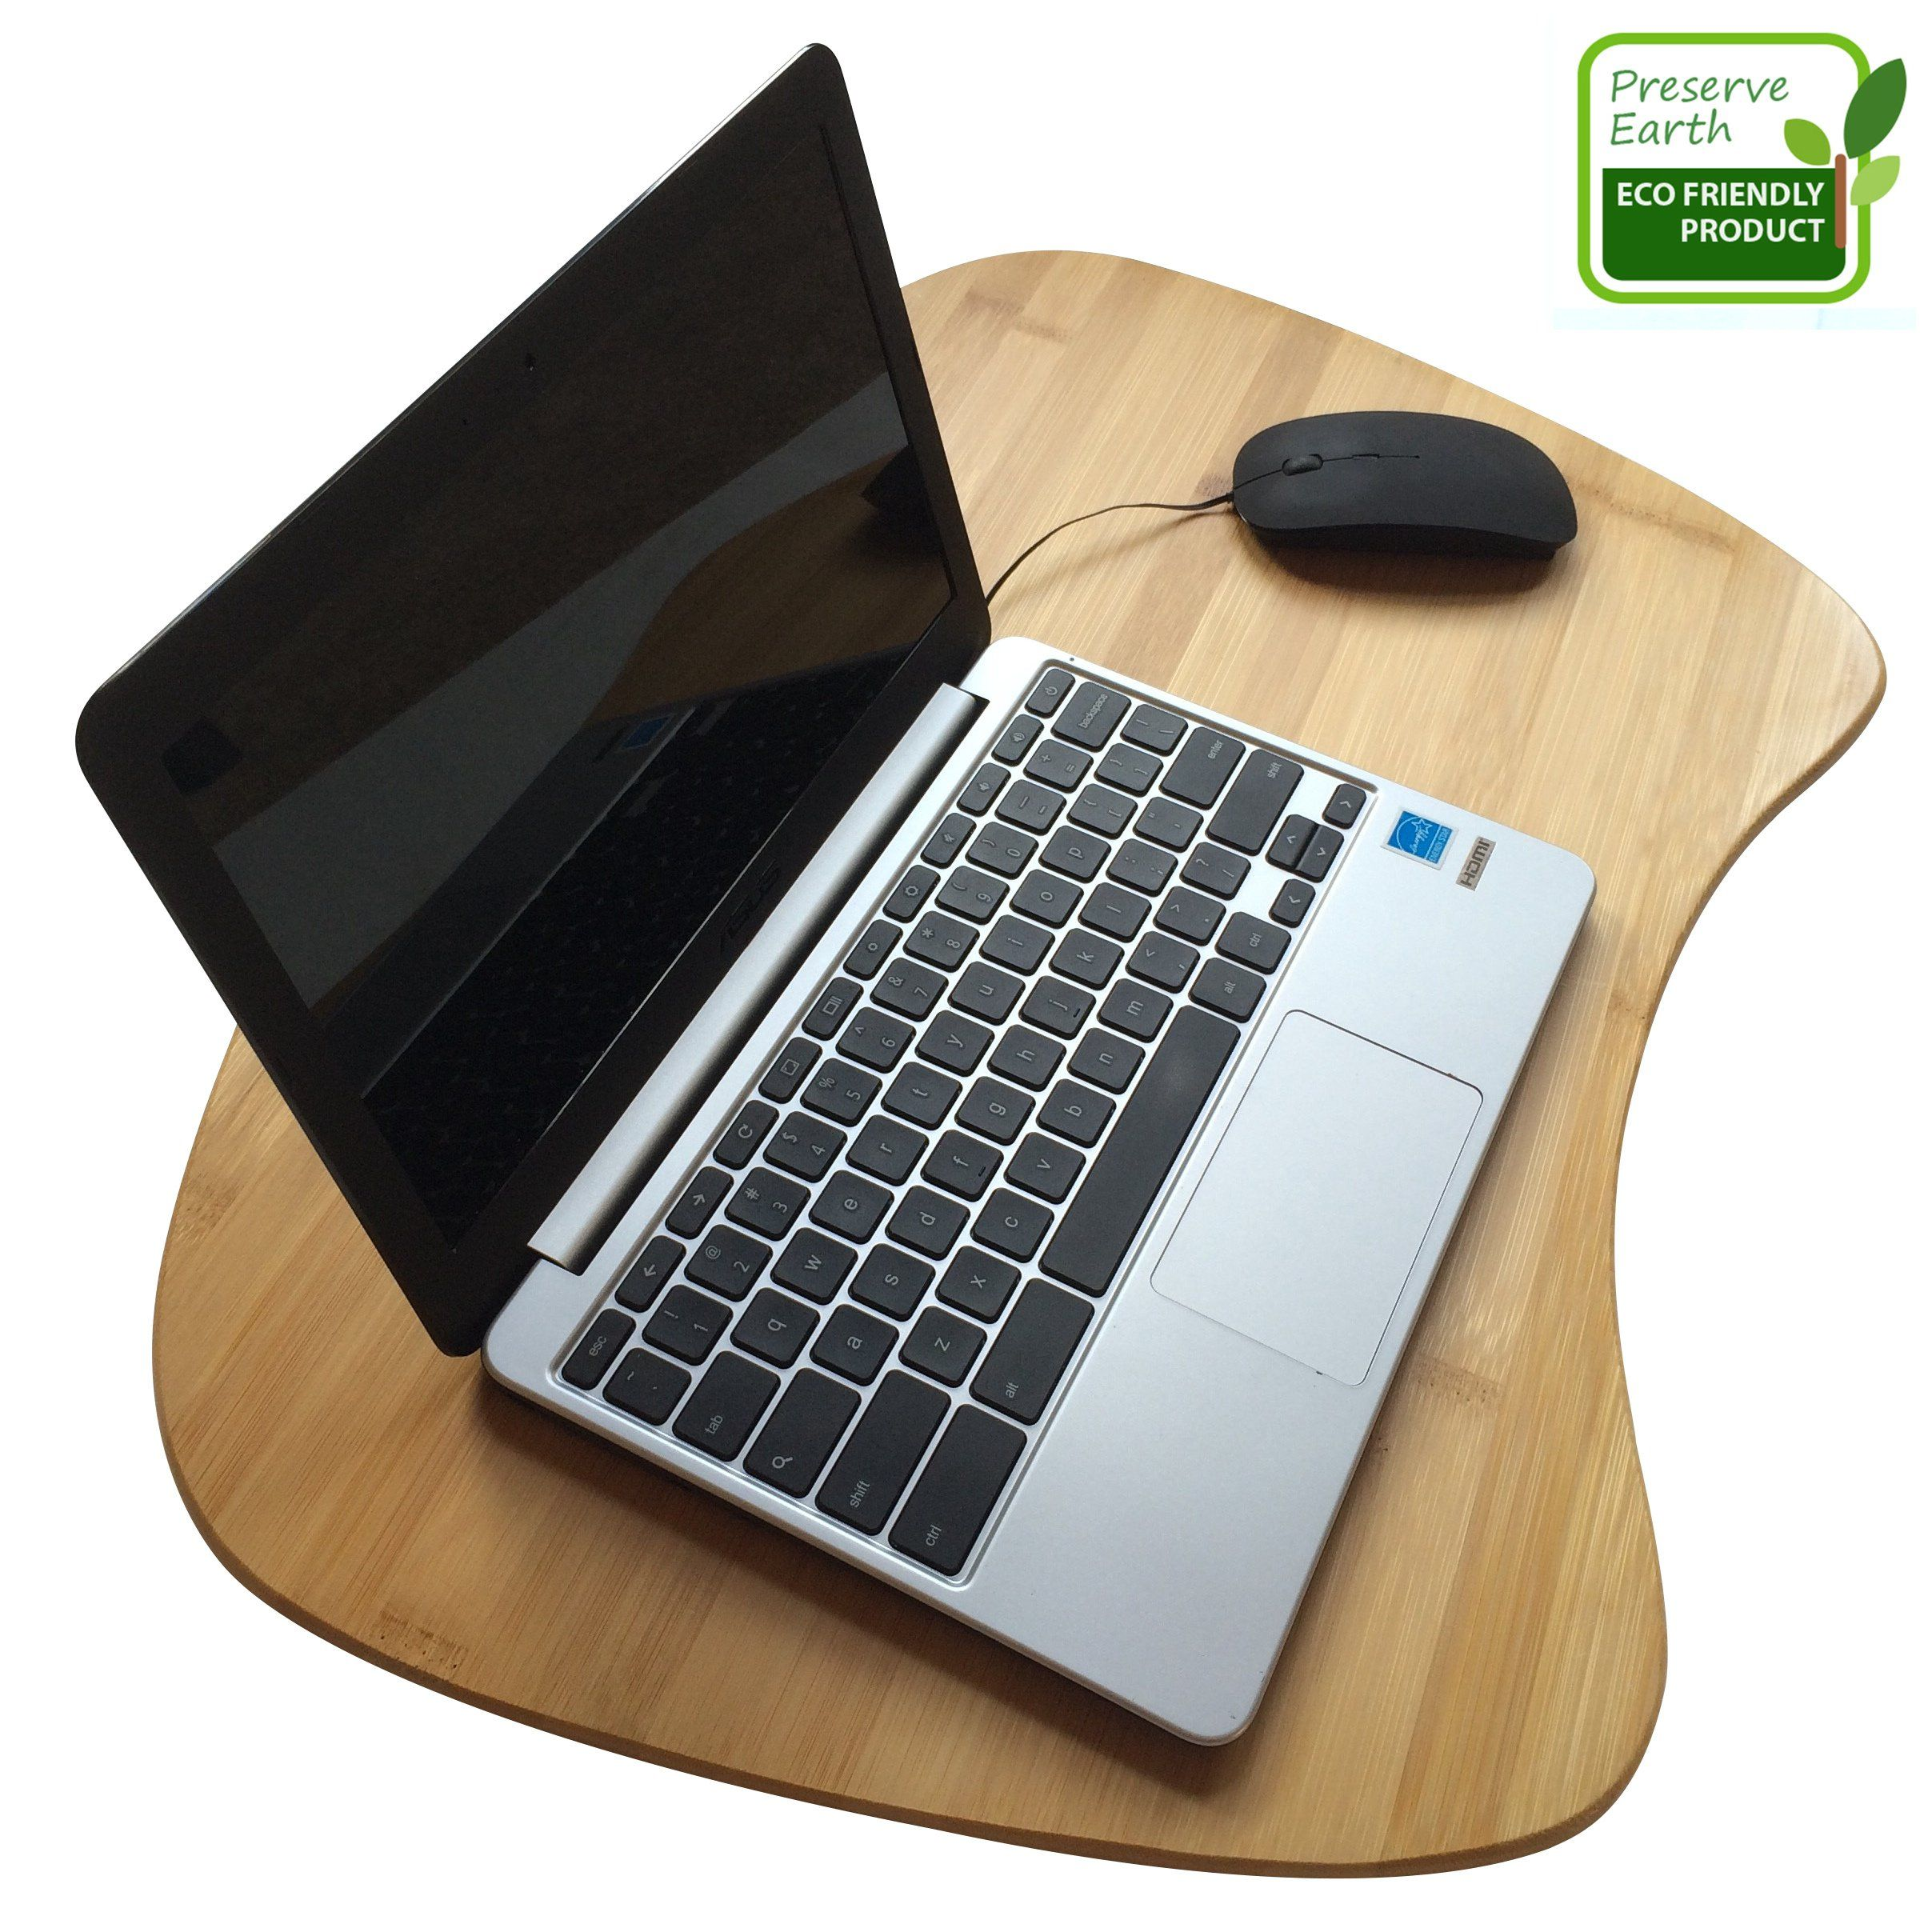 Bamboo Laptop Lap Desk Of Extra Large Size Natural Lapdesk Surface With Cushion And